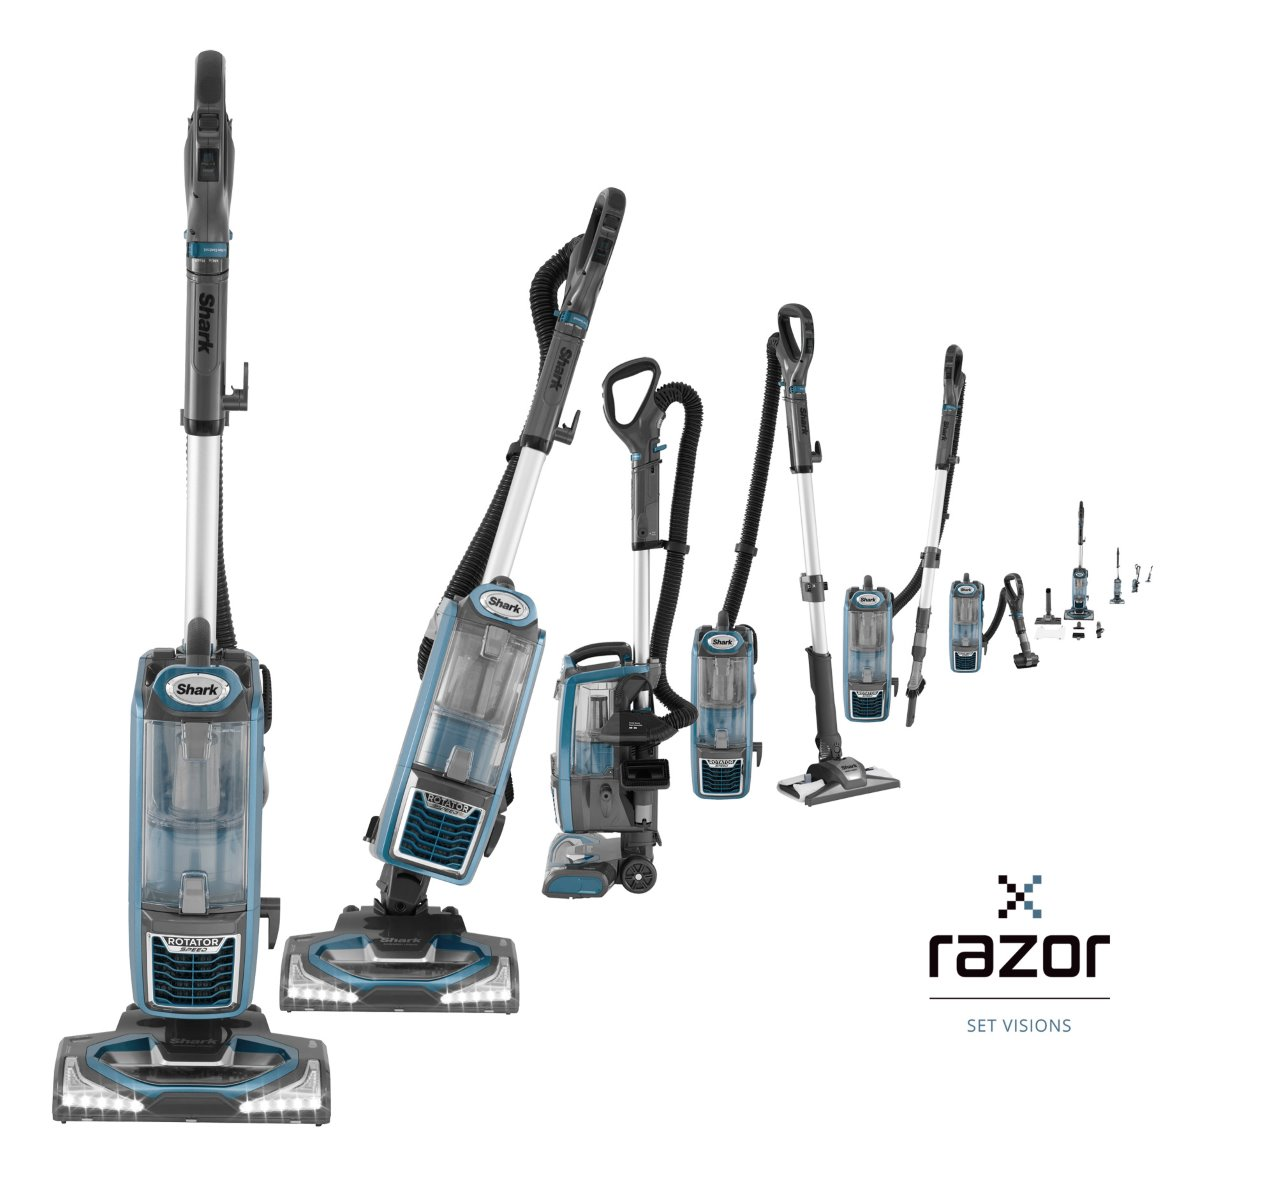 razor cut outs electrical